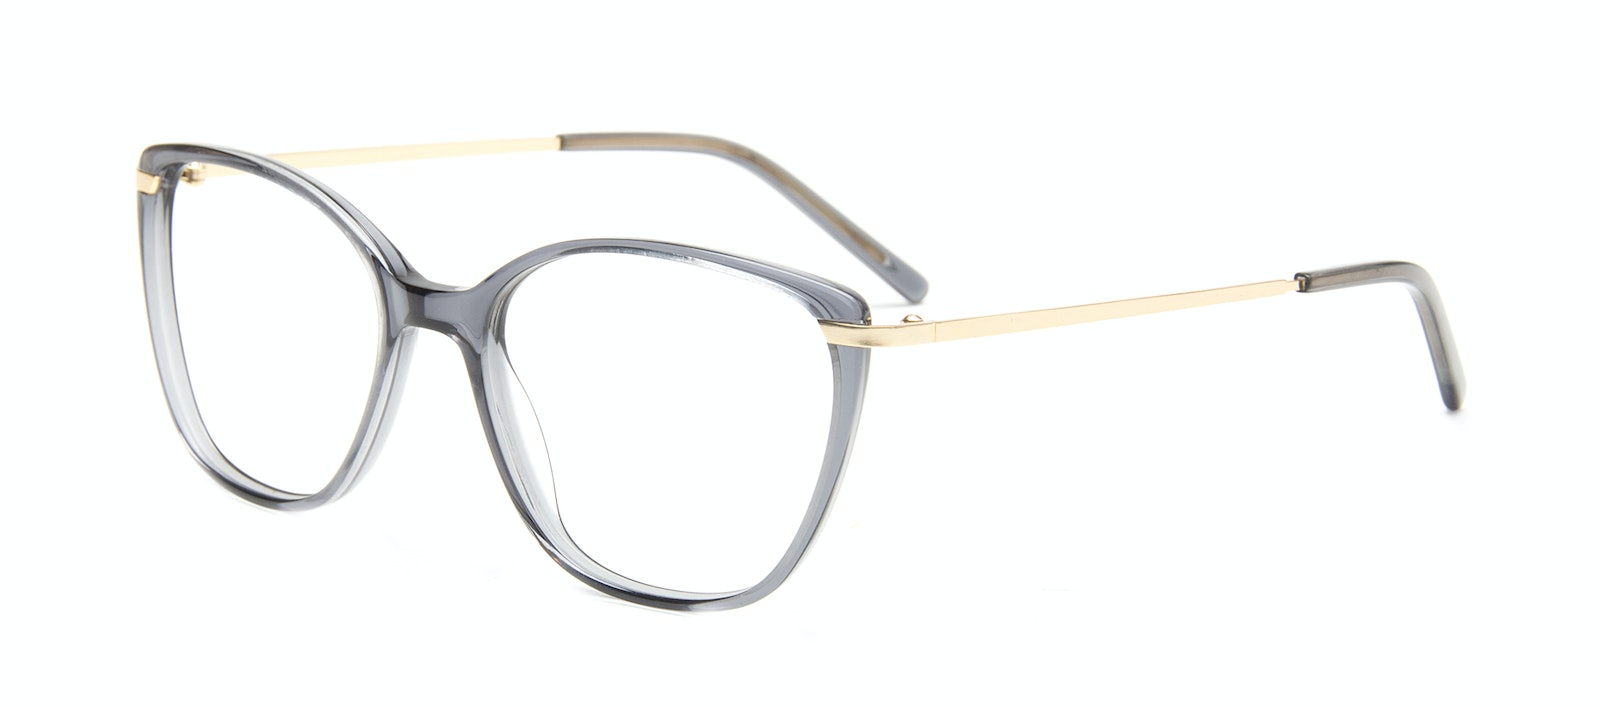 Affordable Fashion Glasses Rectangle Square Eyeglasses Women Illusion Gold Shadow Tilt